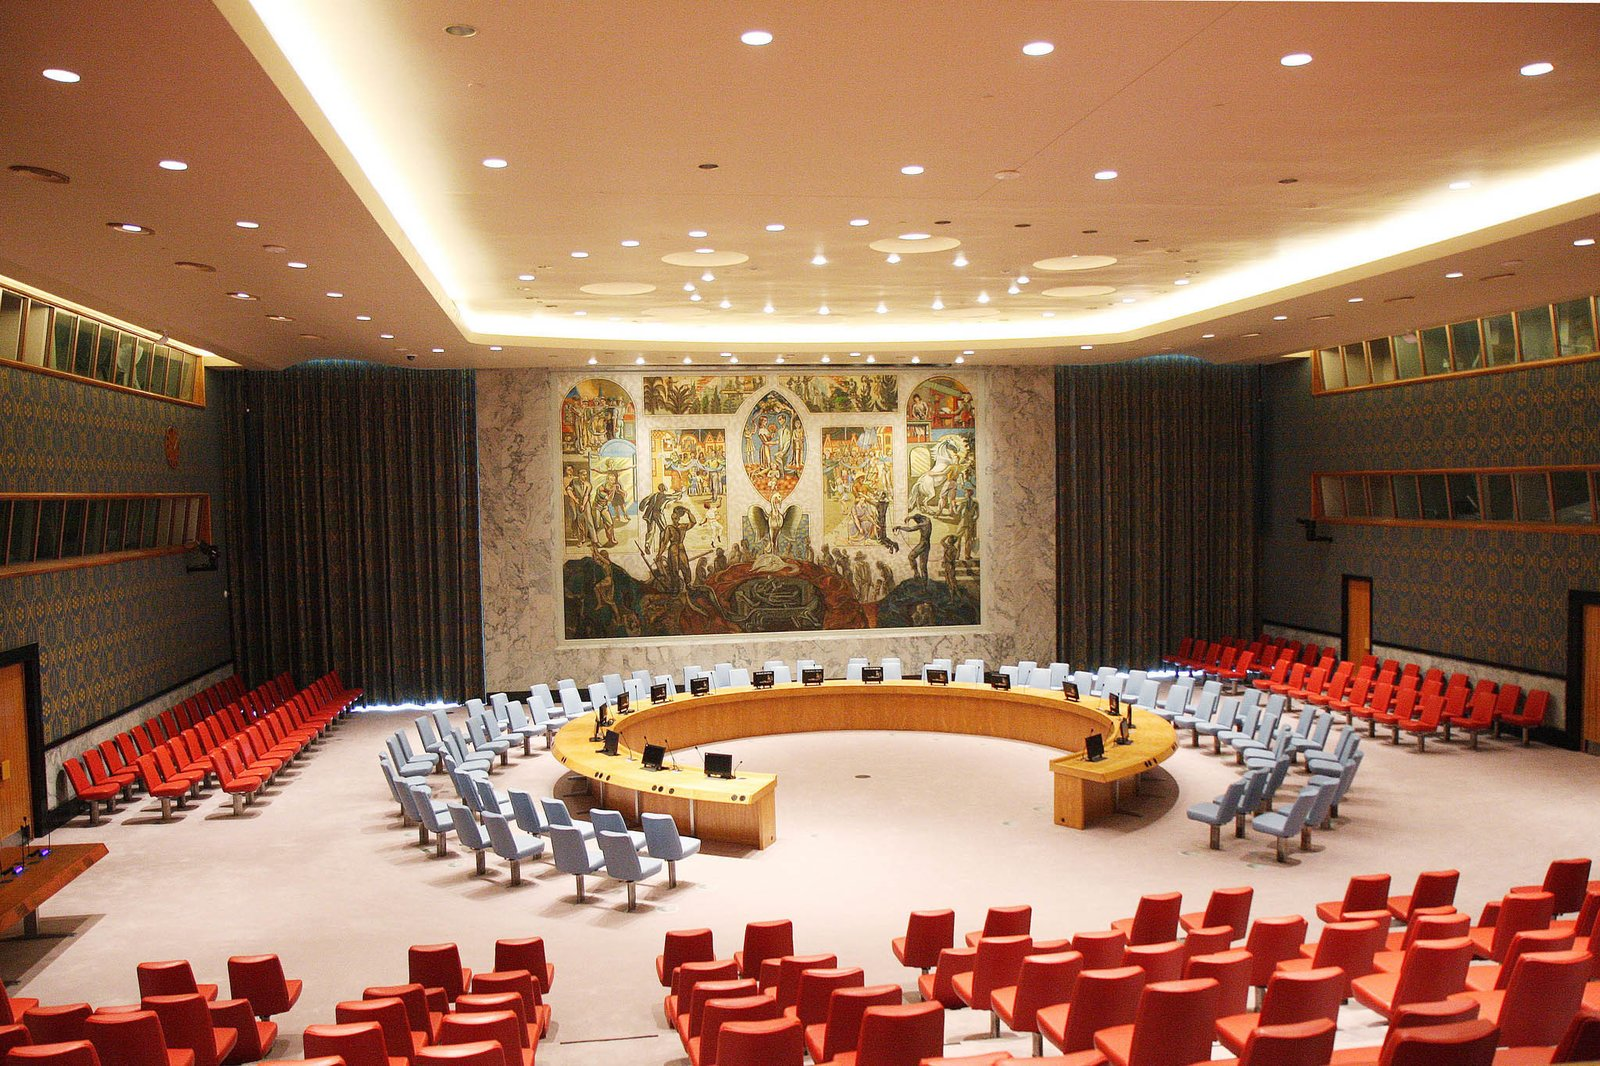 The United Nations Security Council Chamber, designed by the Norwegian architect Arnstein Arneberg and originally a gift of the Norwegian government, was painstakingly restored as part of a larger $2.1 billion overhaul of the U.N.'s New York campus.  Photo 1 of 7 in A Look Inside the United Nations' Restored Security Council Chamber